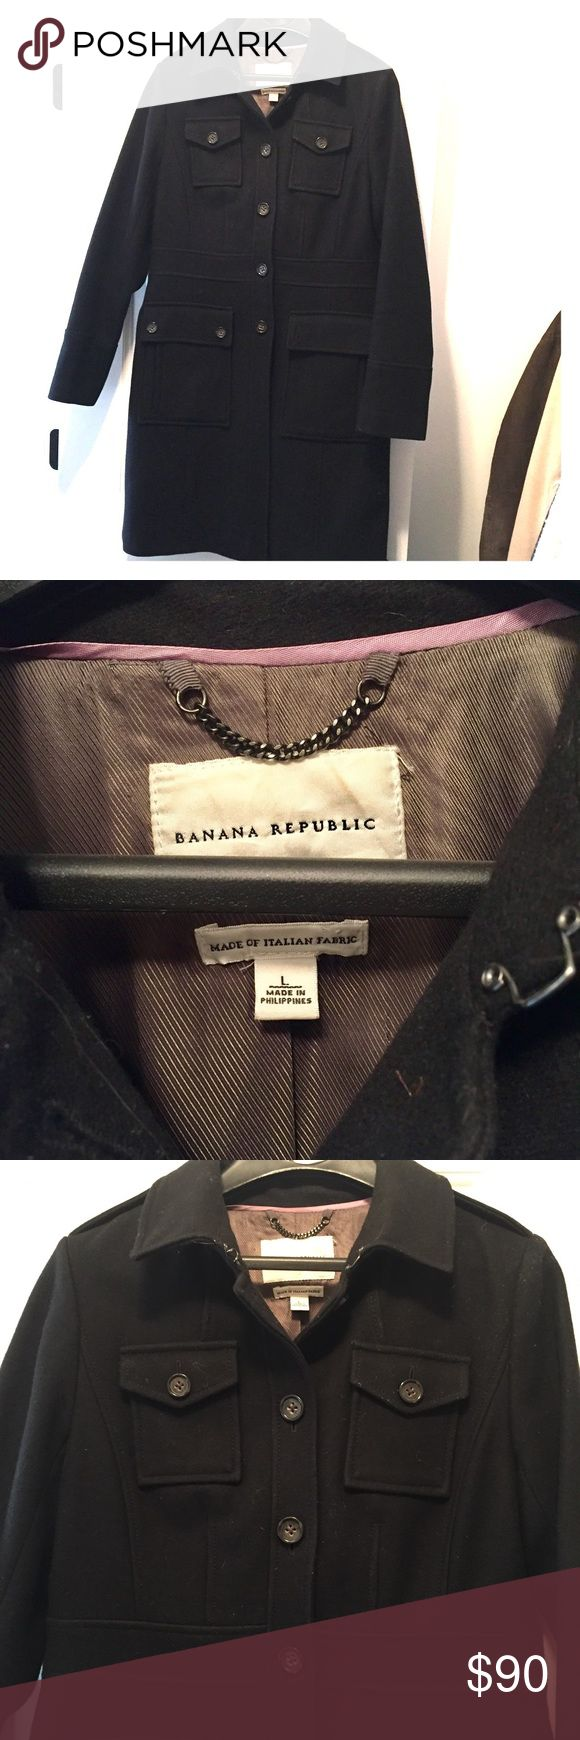 Banana Republic Military Style Topcoat Black, sleek design with clean lines. Military inspired details. This item is like new, without tags! Banana Republic Jackets & Coats